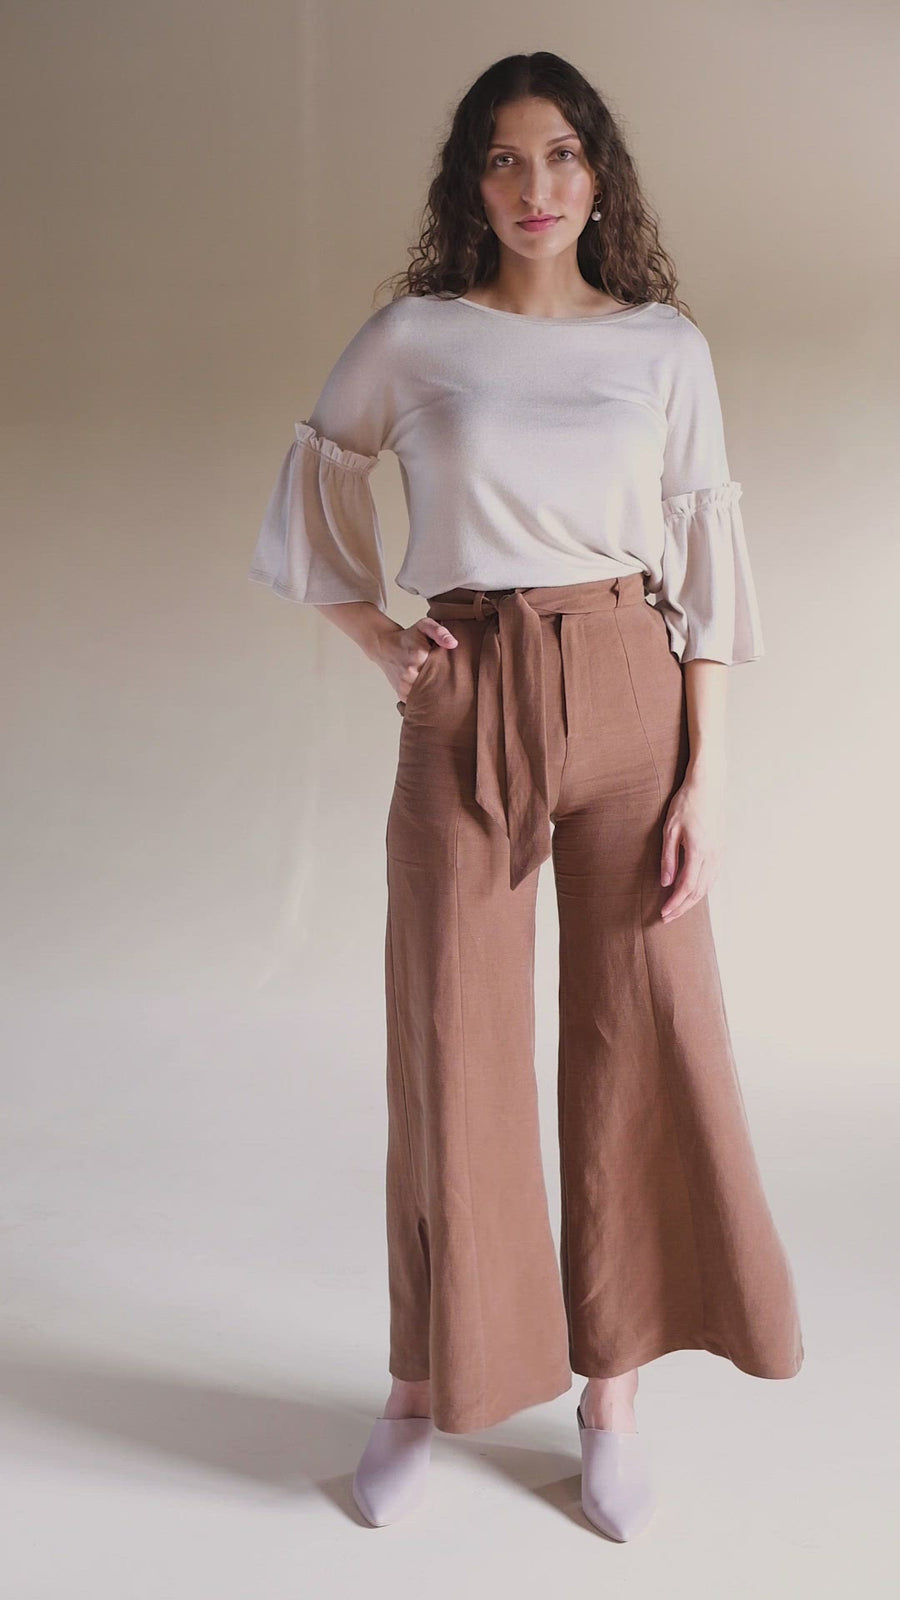 Model wearing Akala Clothing's sustainable wide leg pant in Rust Brown color, size Extra Small